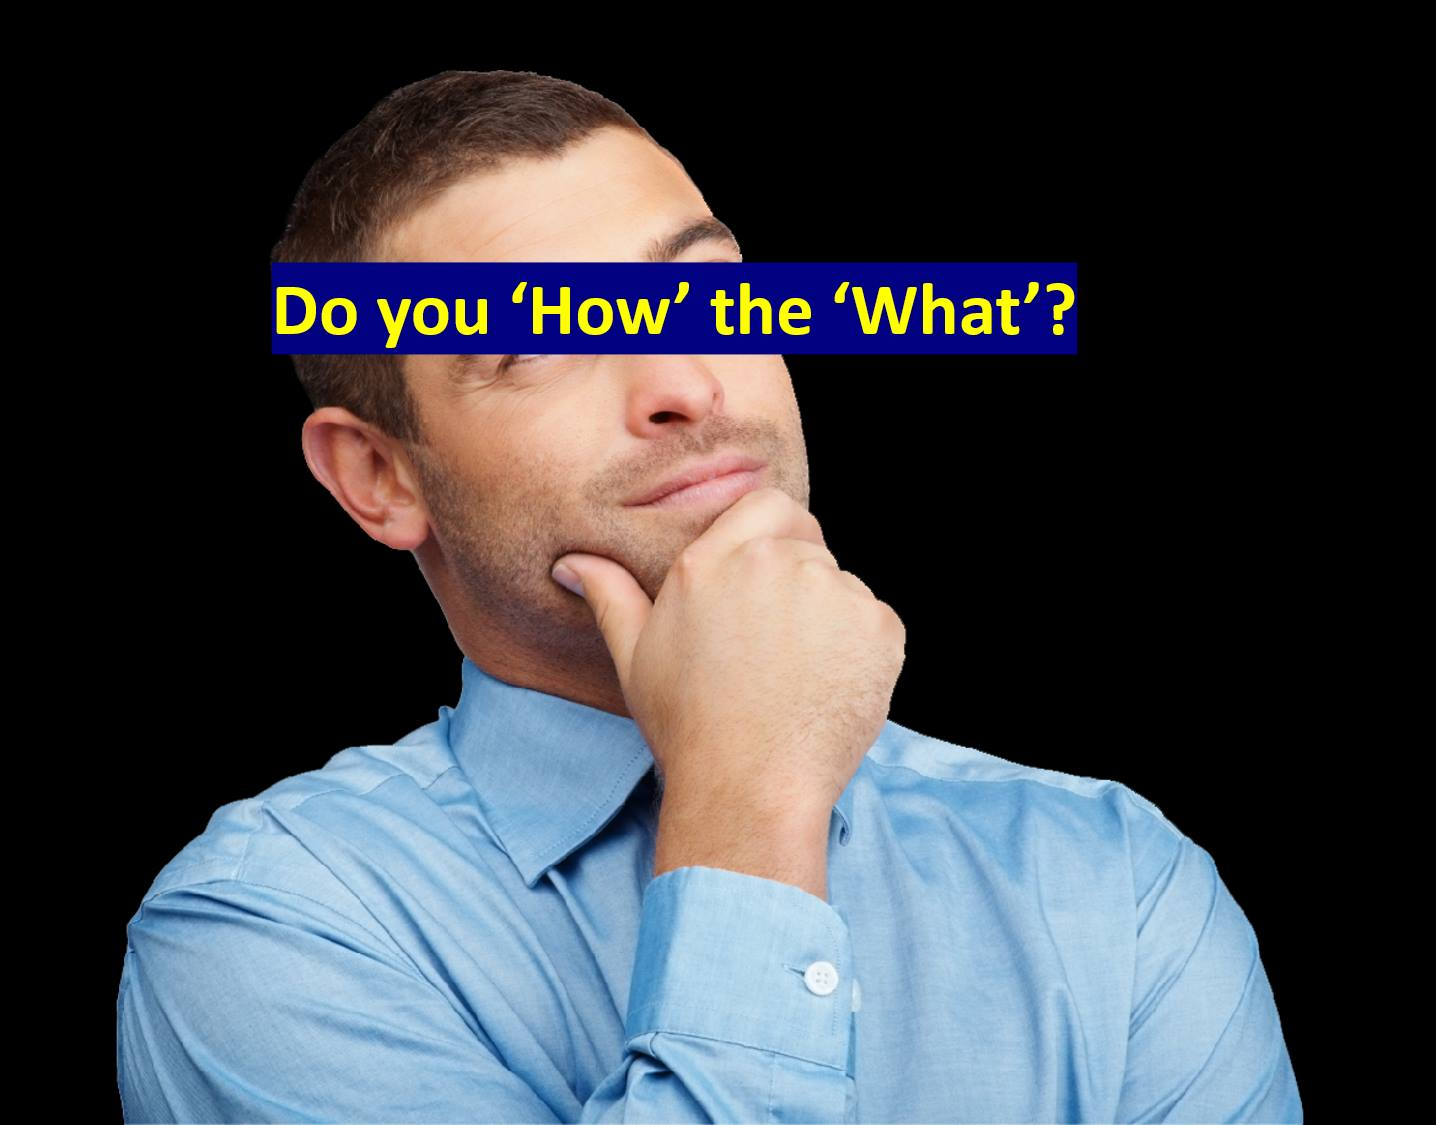 Do you 'How' the 'What'?